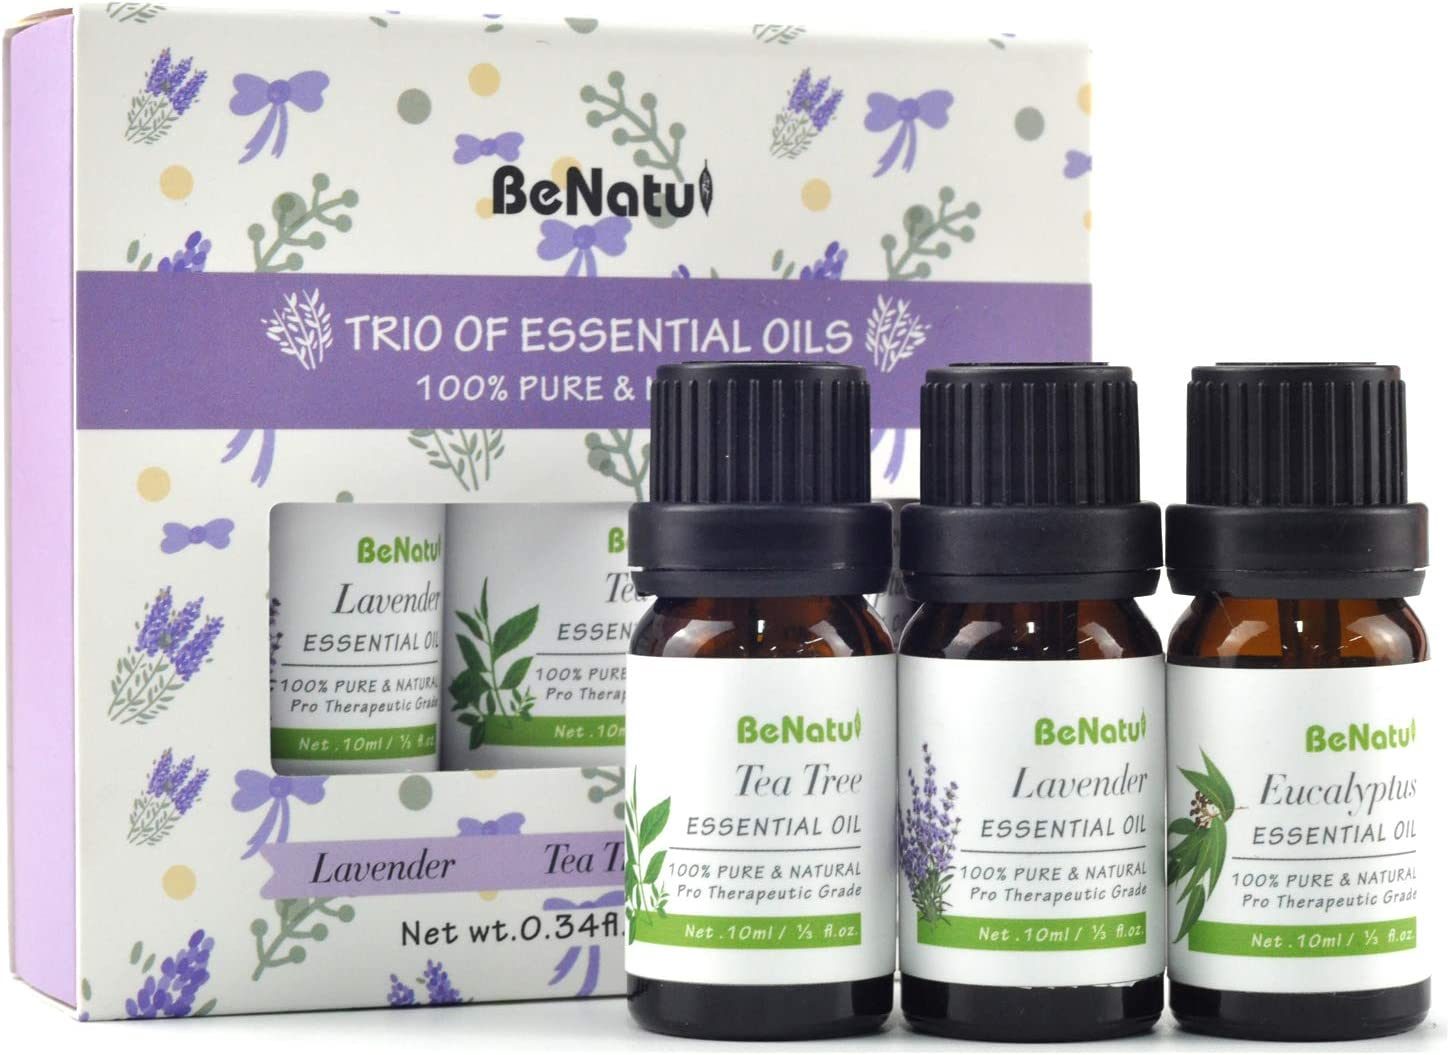 Essential Oils Set (Tea Tree, Lavender, Eucalyptus) for Skin Care, Aromatherapy, Soap Making - Organic & Pure Therapeutic Grade Diffuser Oil for Home, Stress & Anxiety Relief, Anti Acne - by Benatu: Health & Personal Care